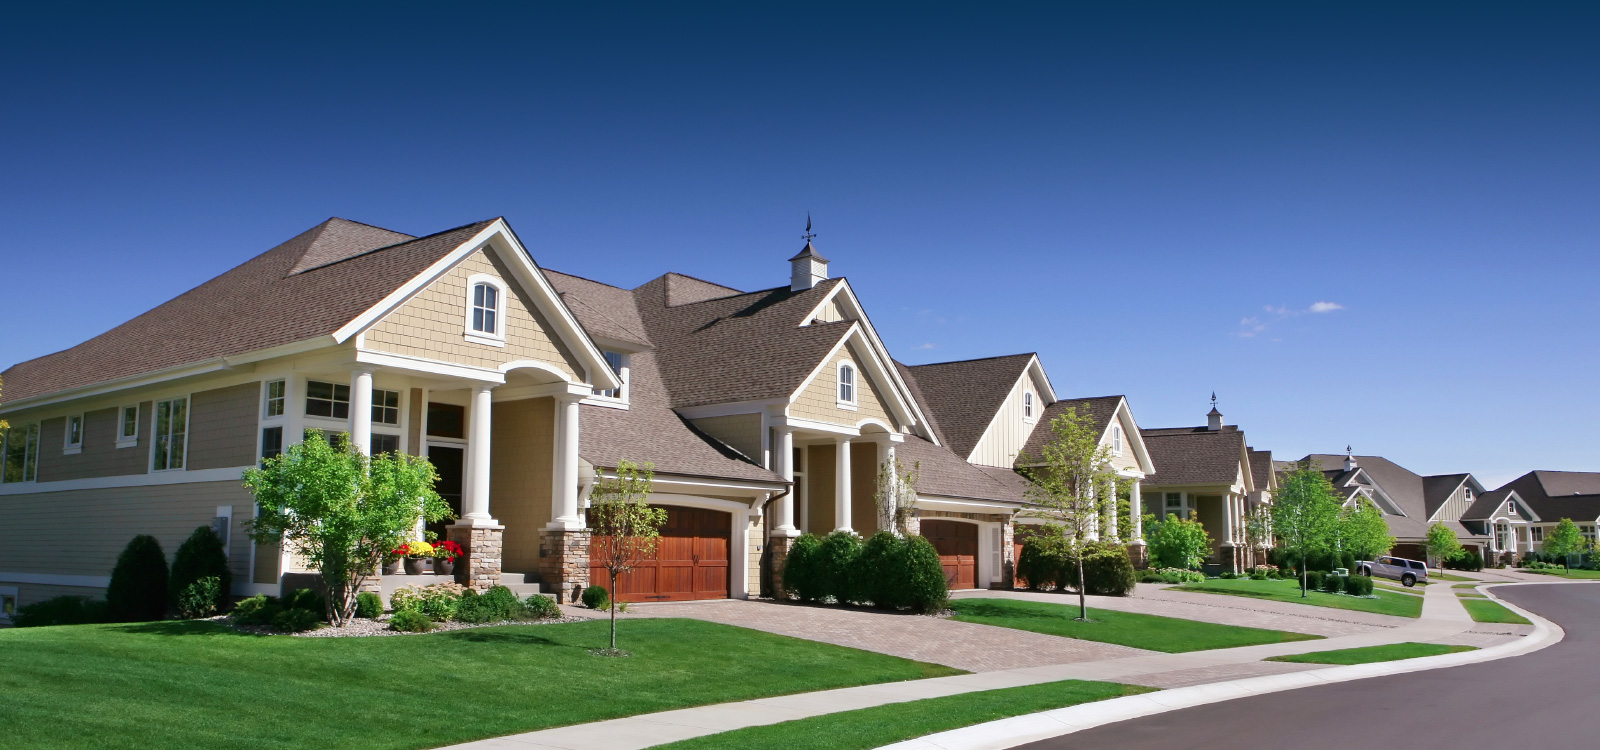 Home Inspection Checklist in St Charles